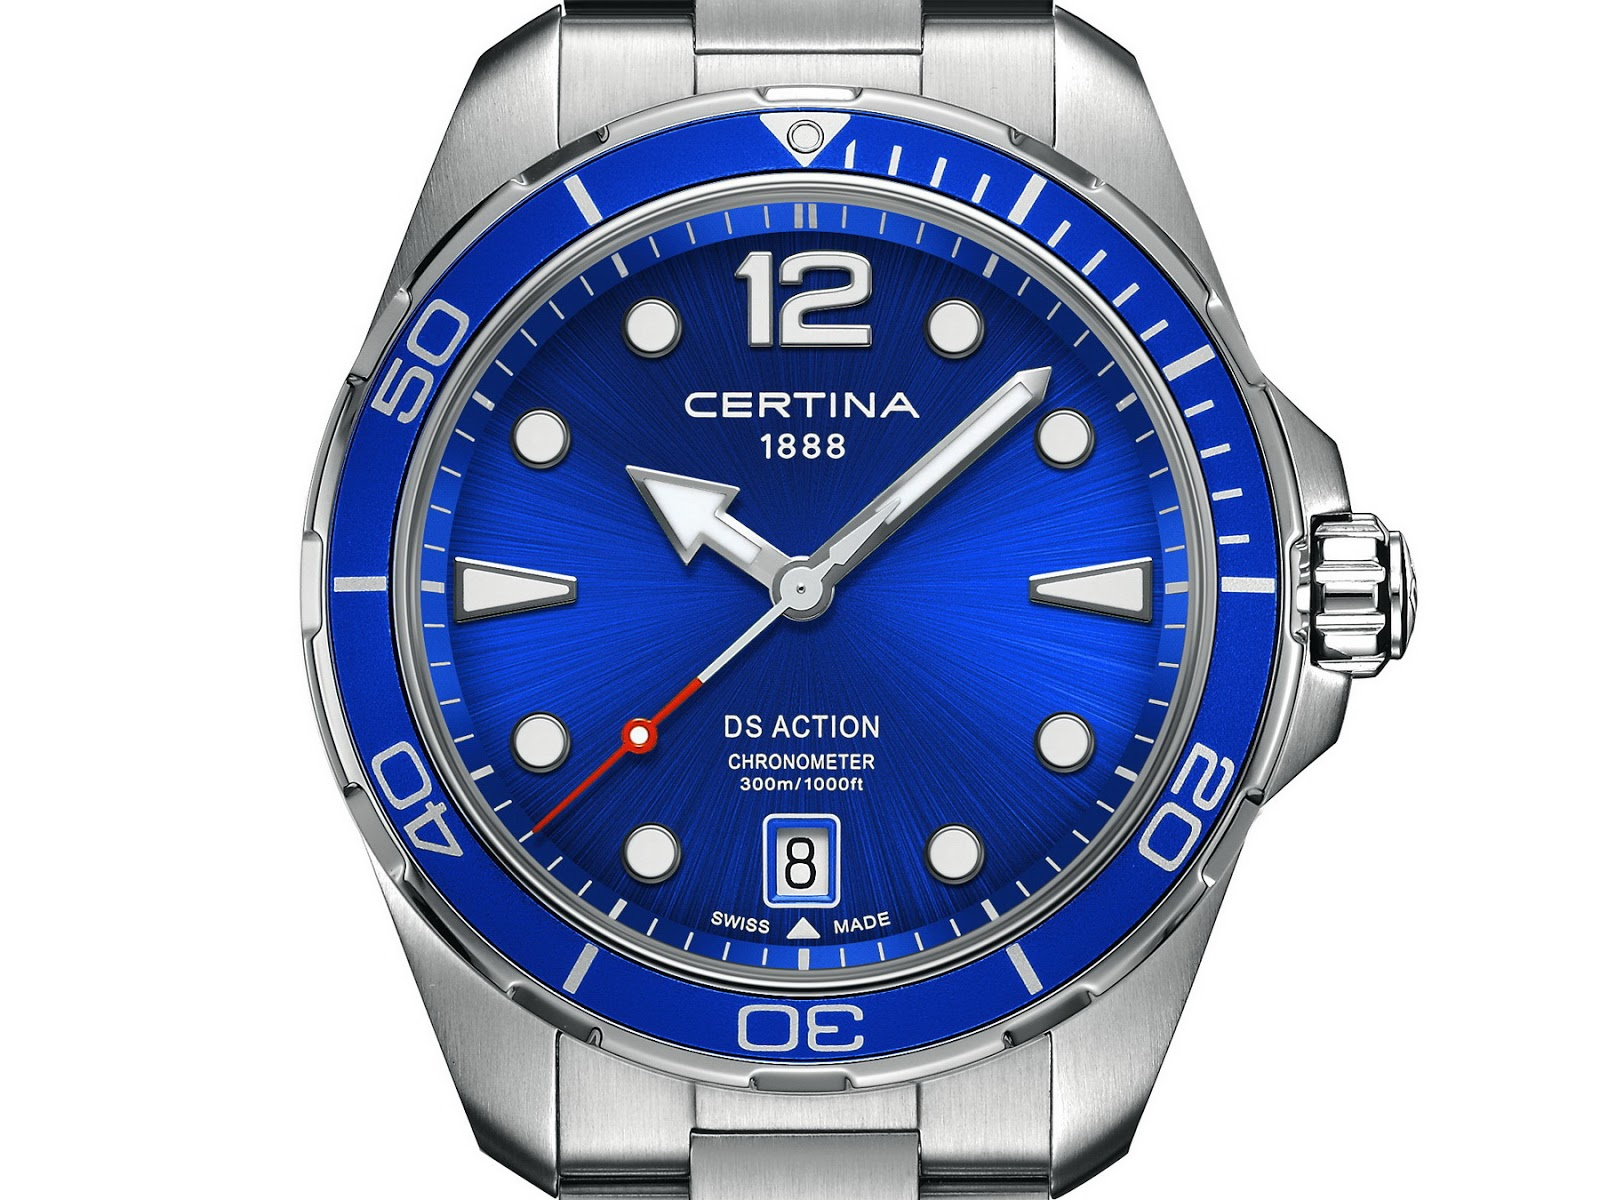 Certina's new COSC-Certified DS Action Divers CERTINA+DS+Action+DIVER+COSC-Certified+04